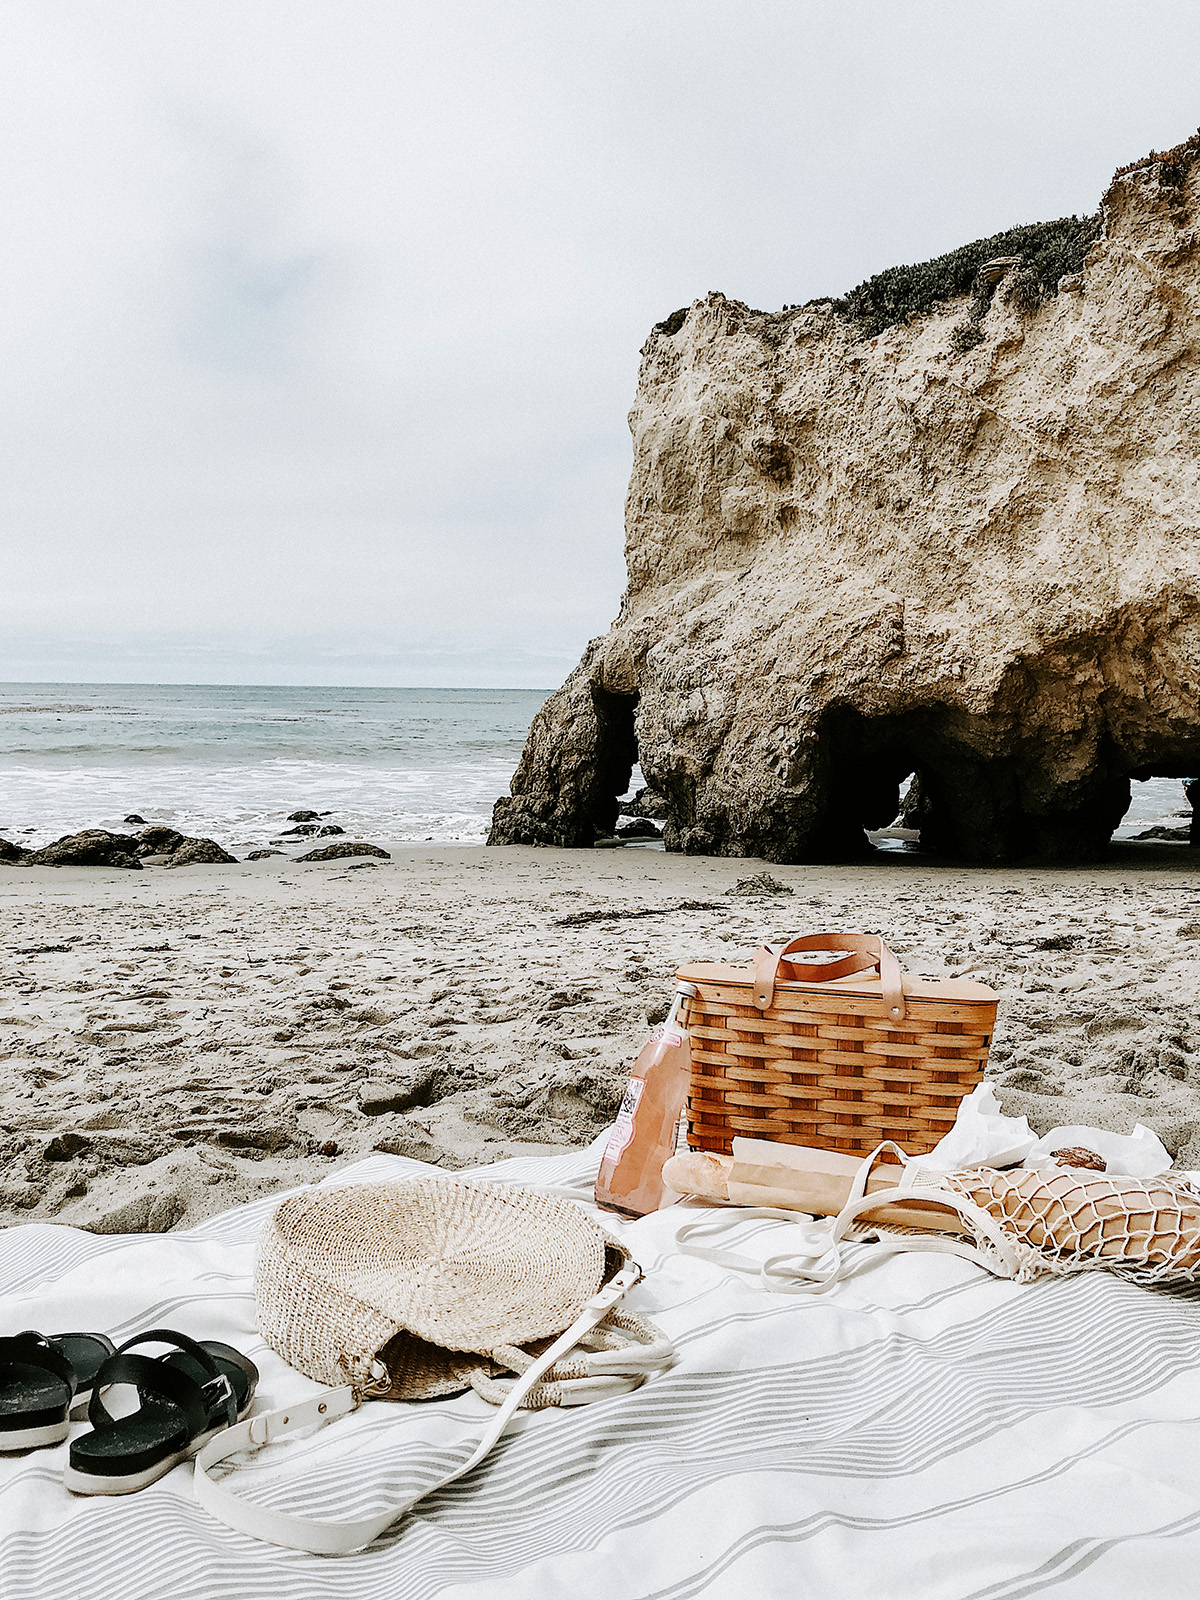 Tips What To Pack For A Beach Picnic